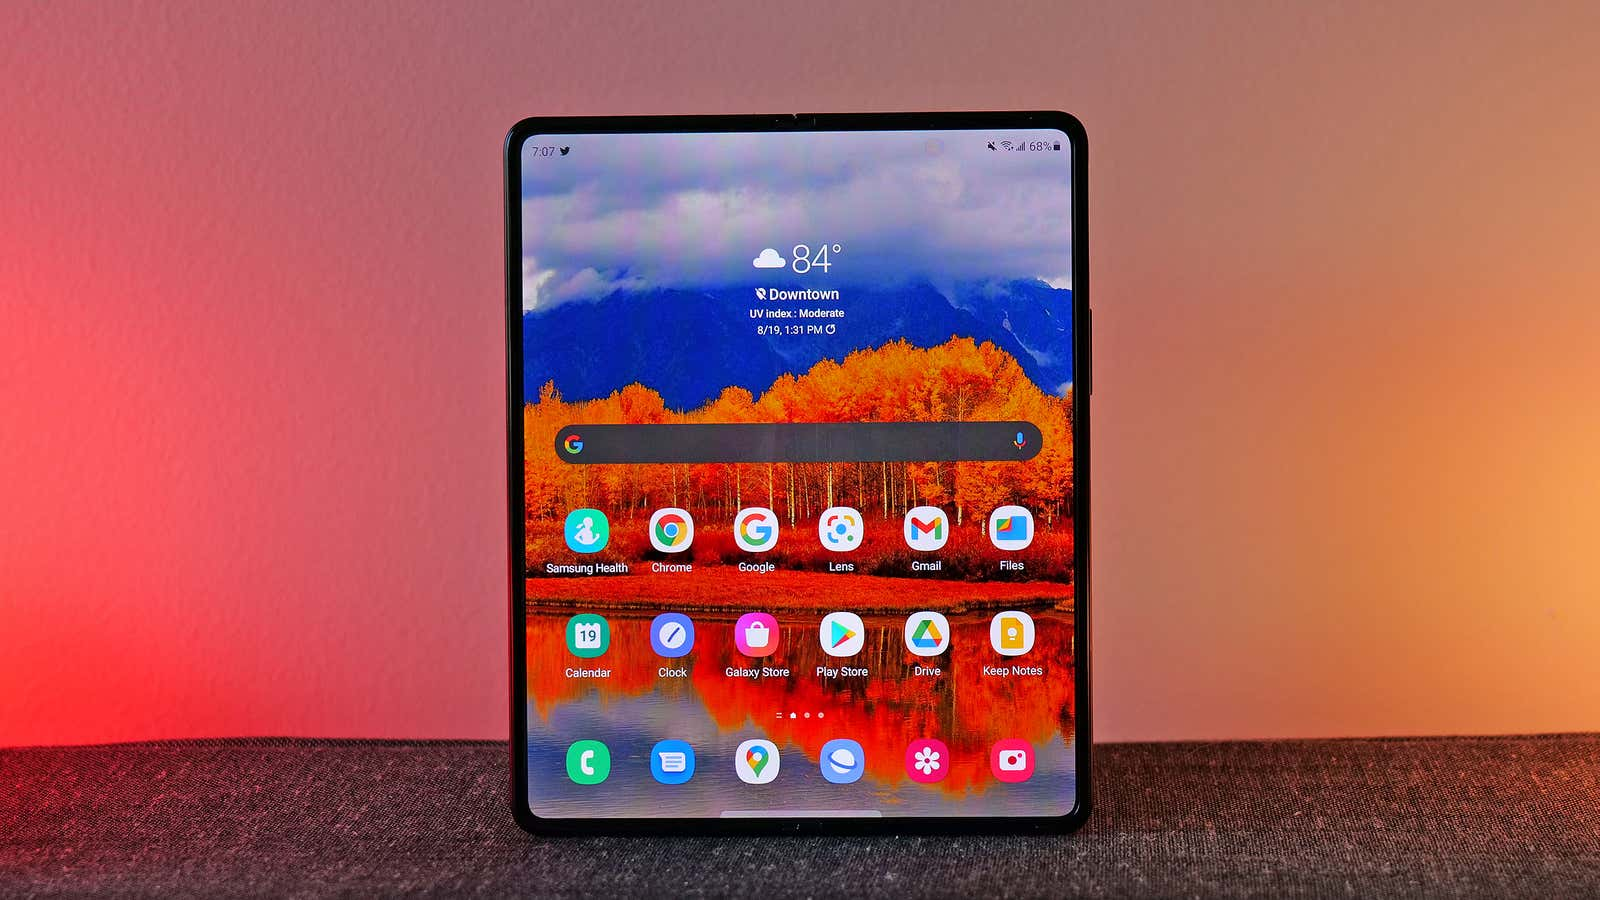 025b58c1450b774613edefd0efa02bbe - Samsung Galaxy Z Fold 3 price, full specs, and review